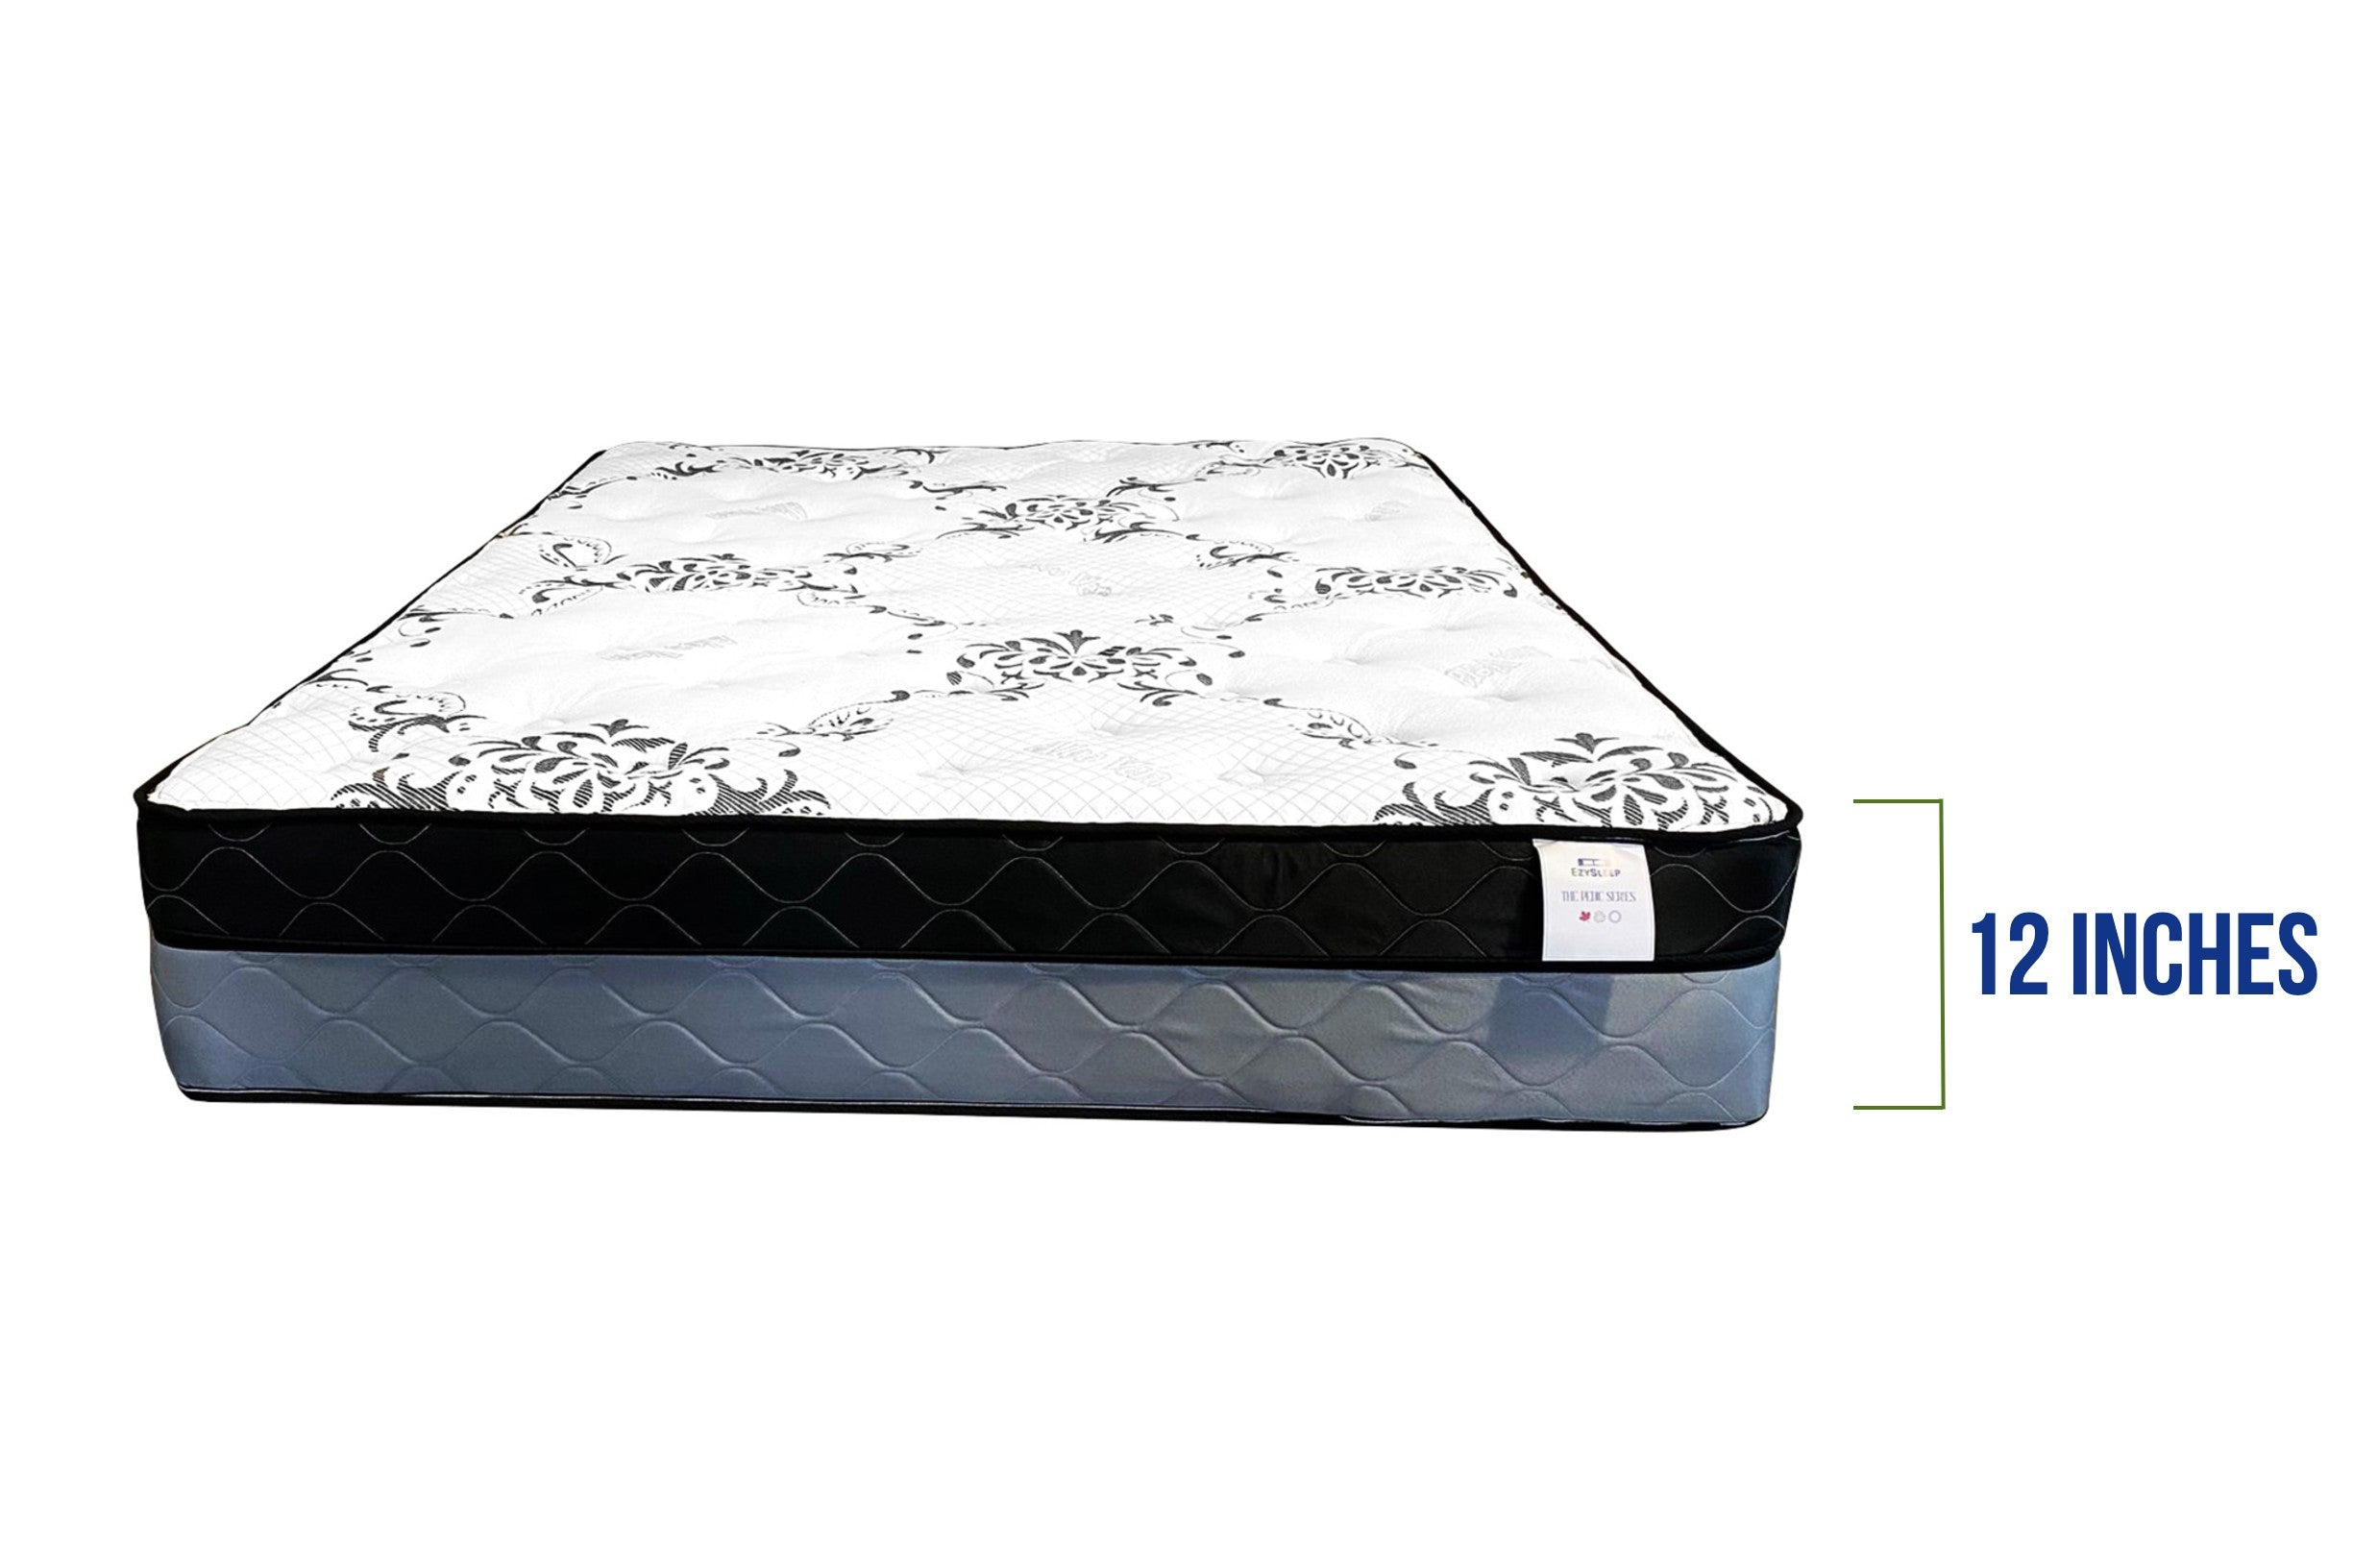 The Pedic Series Mattress 12in Thickness